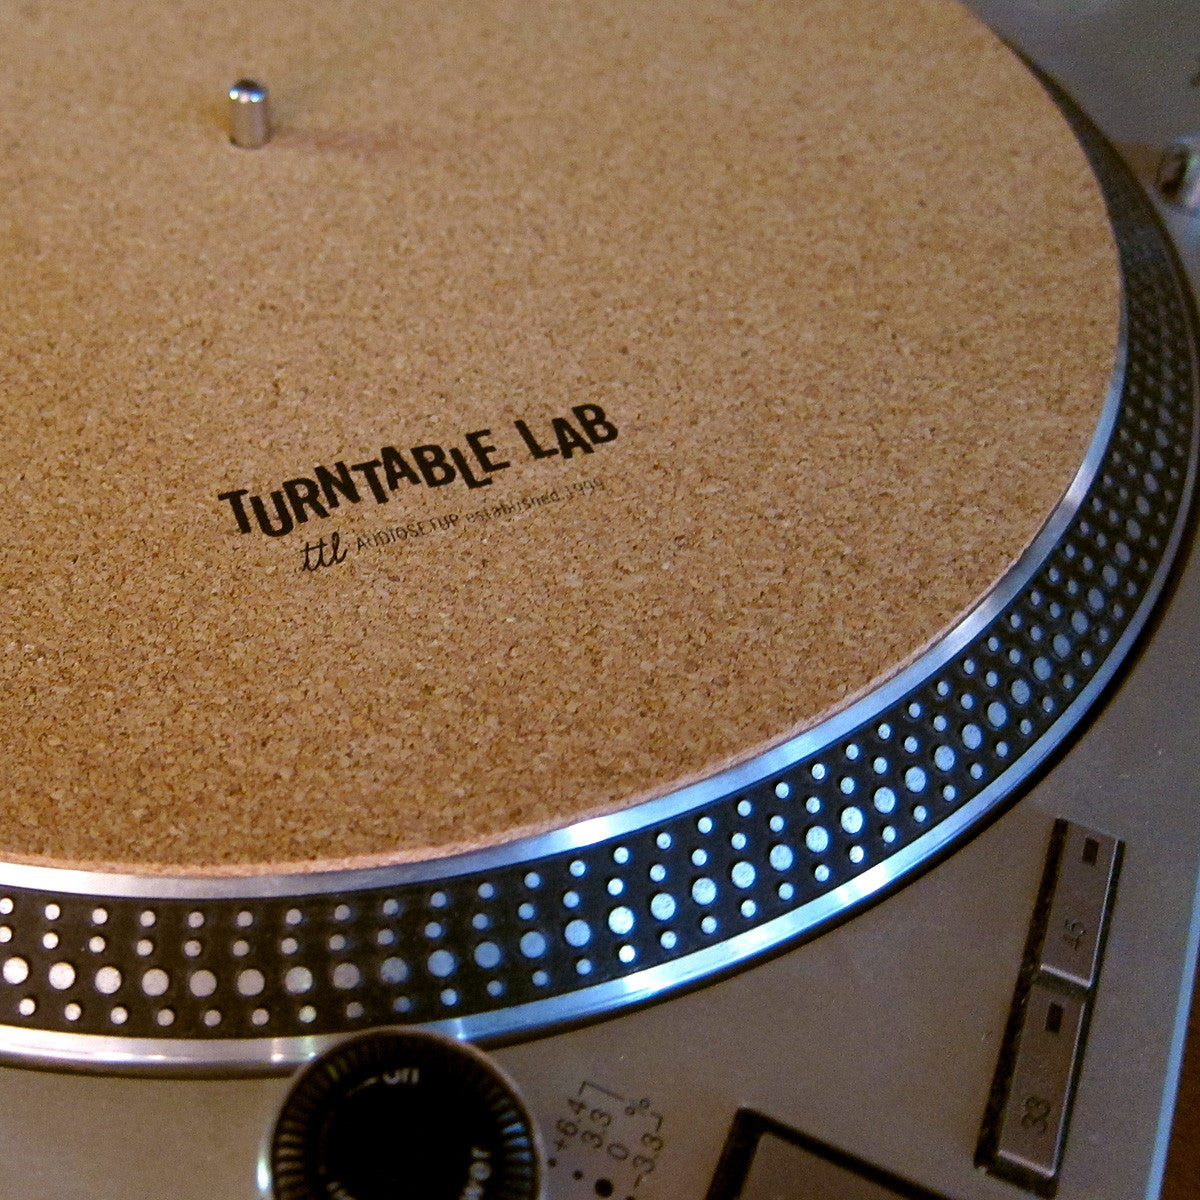 Turntable Lab Cork Record Mat Turntablelab Com